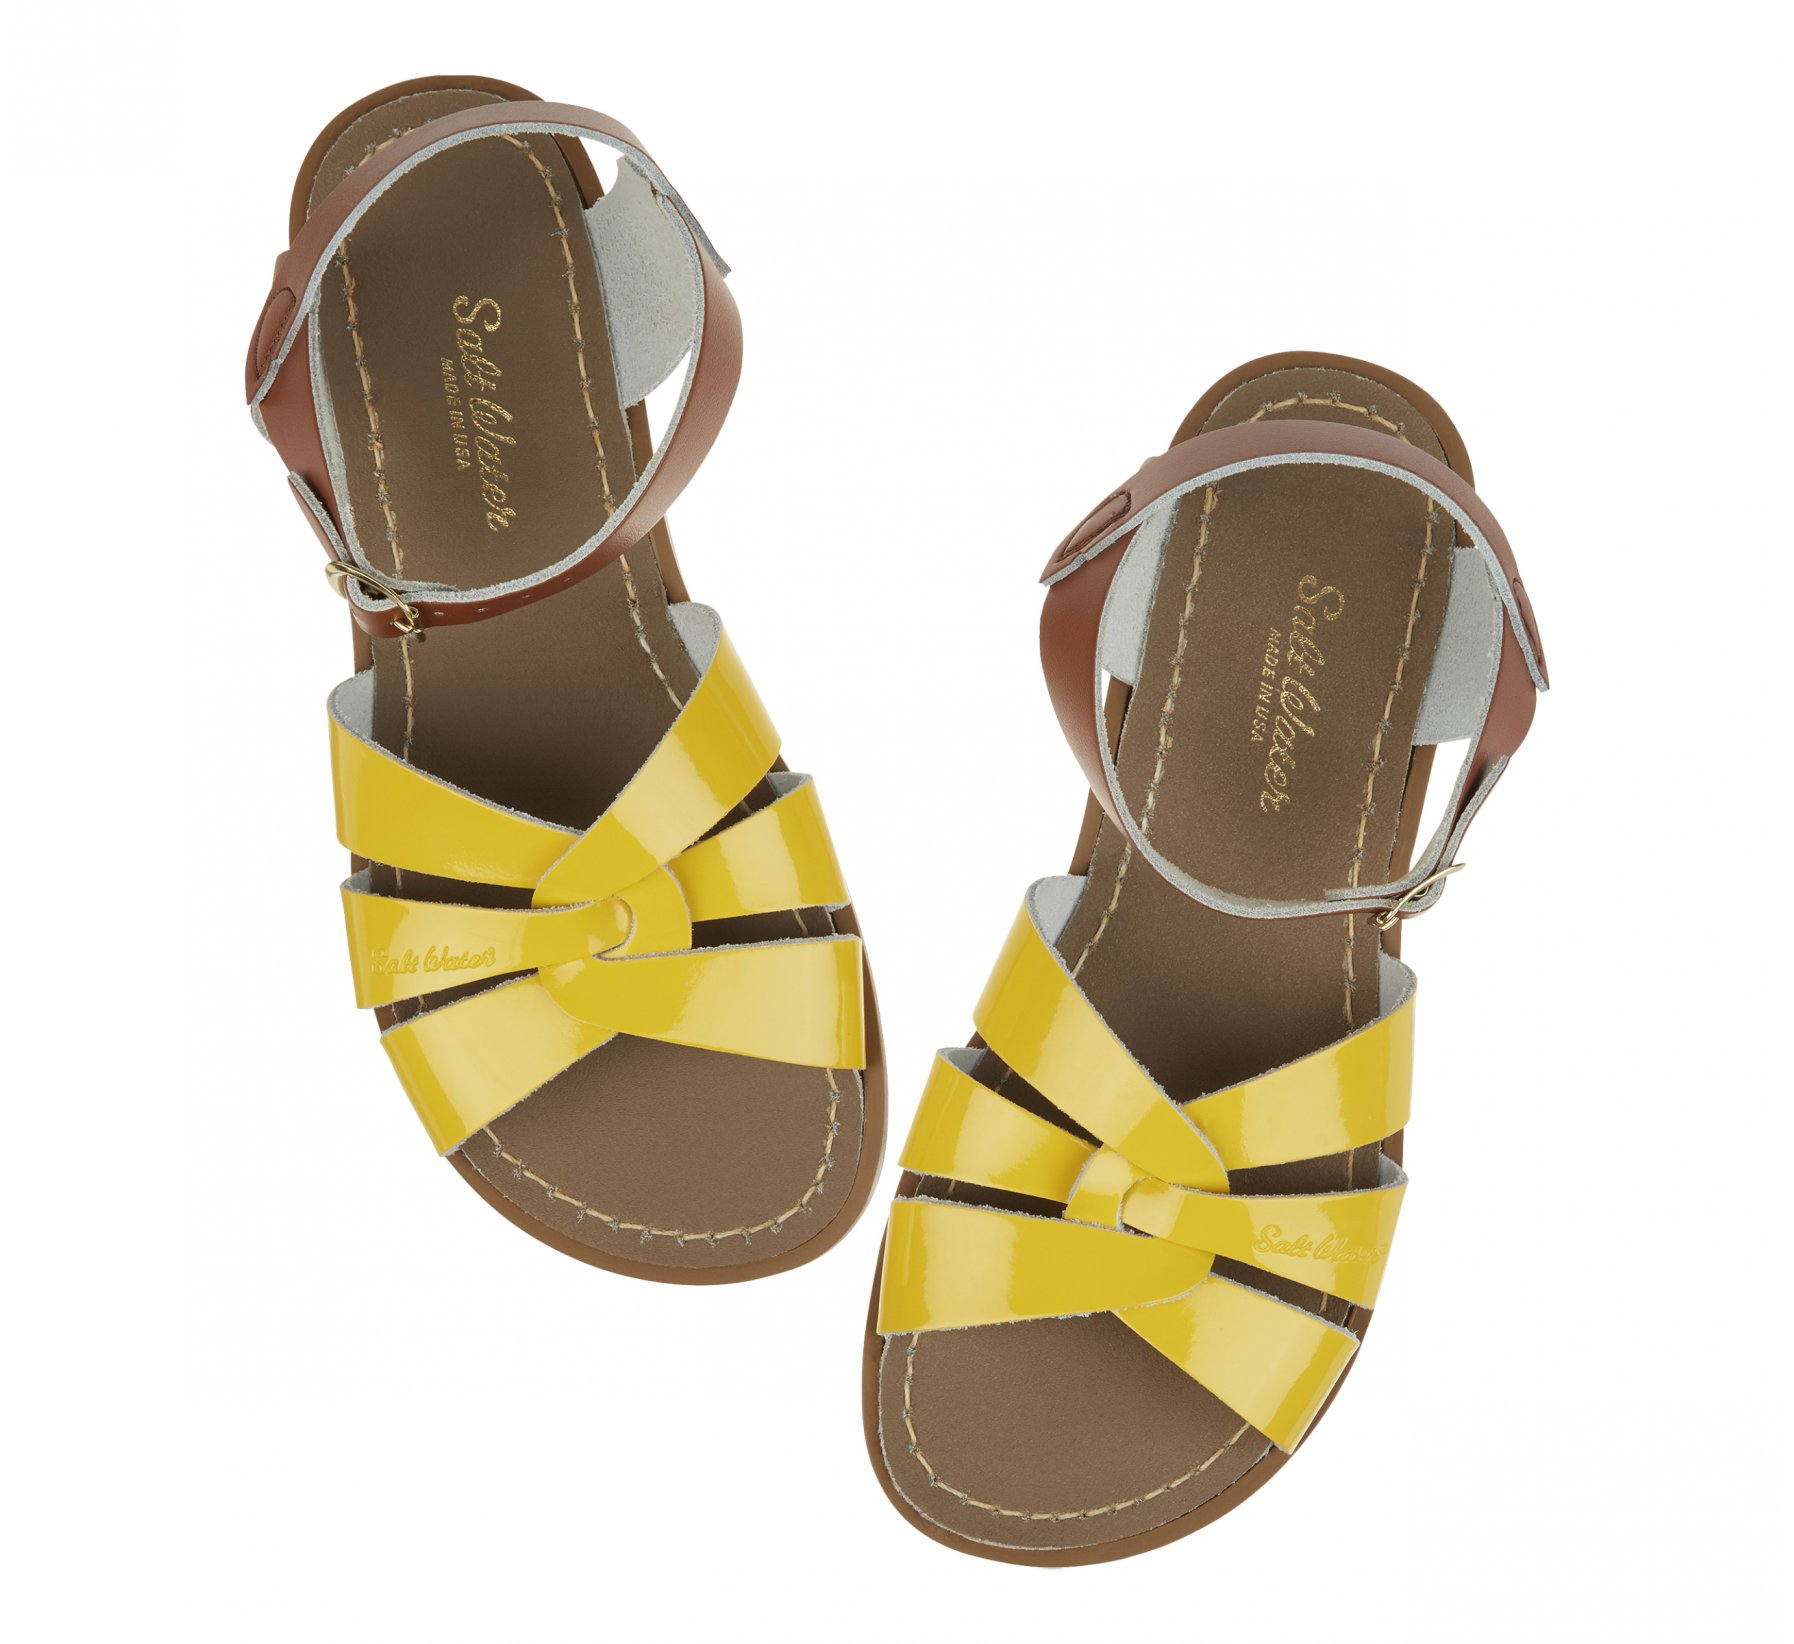 Original Mash-up Banoffee - Salt Water Sandals